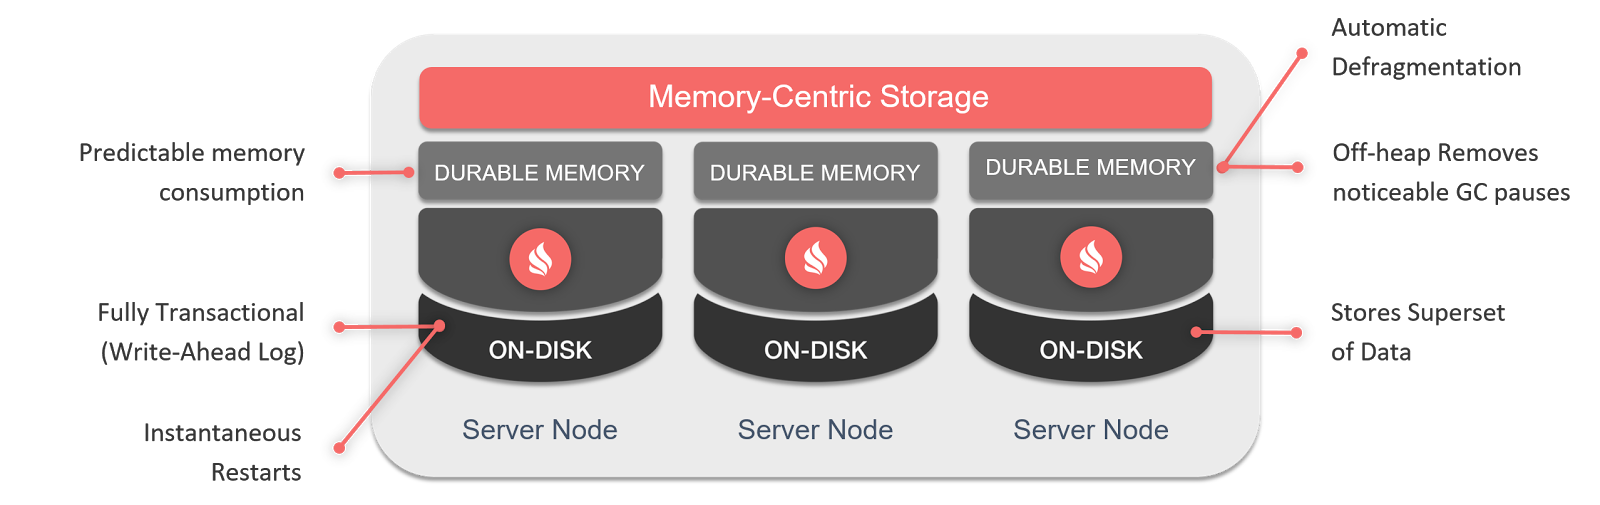 Apache® Ignite™ + Persistent Data Store — In-Memory проникает на диски. Часть I — Durable Memory - 1